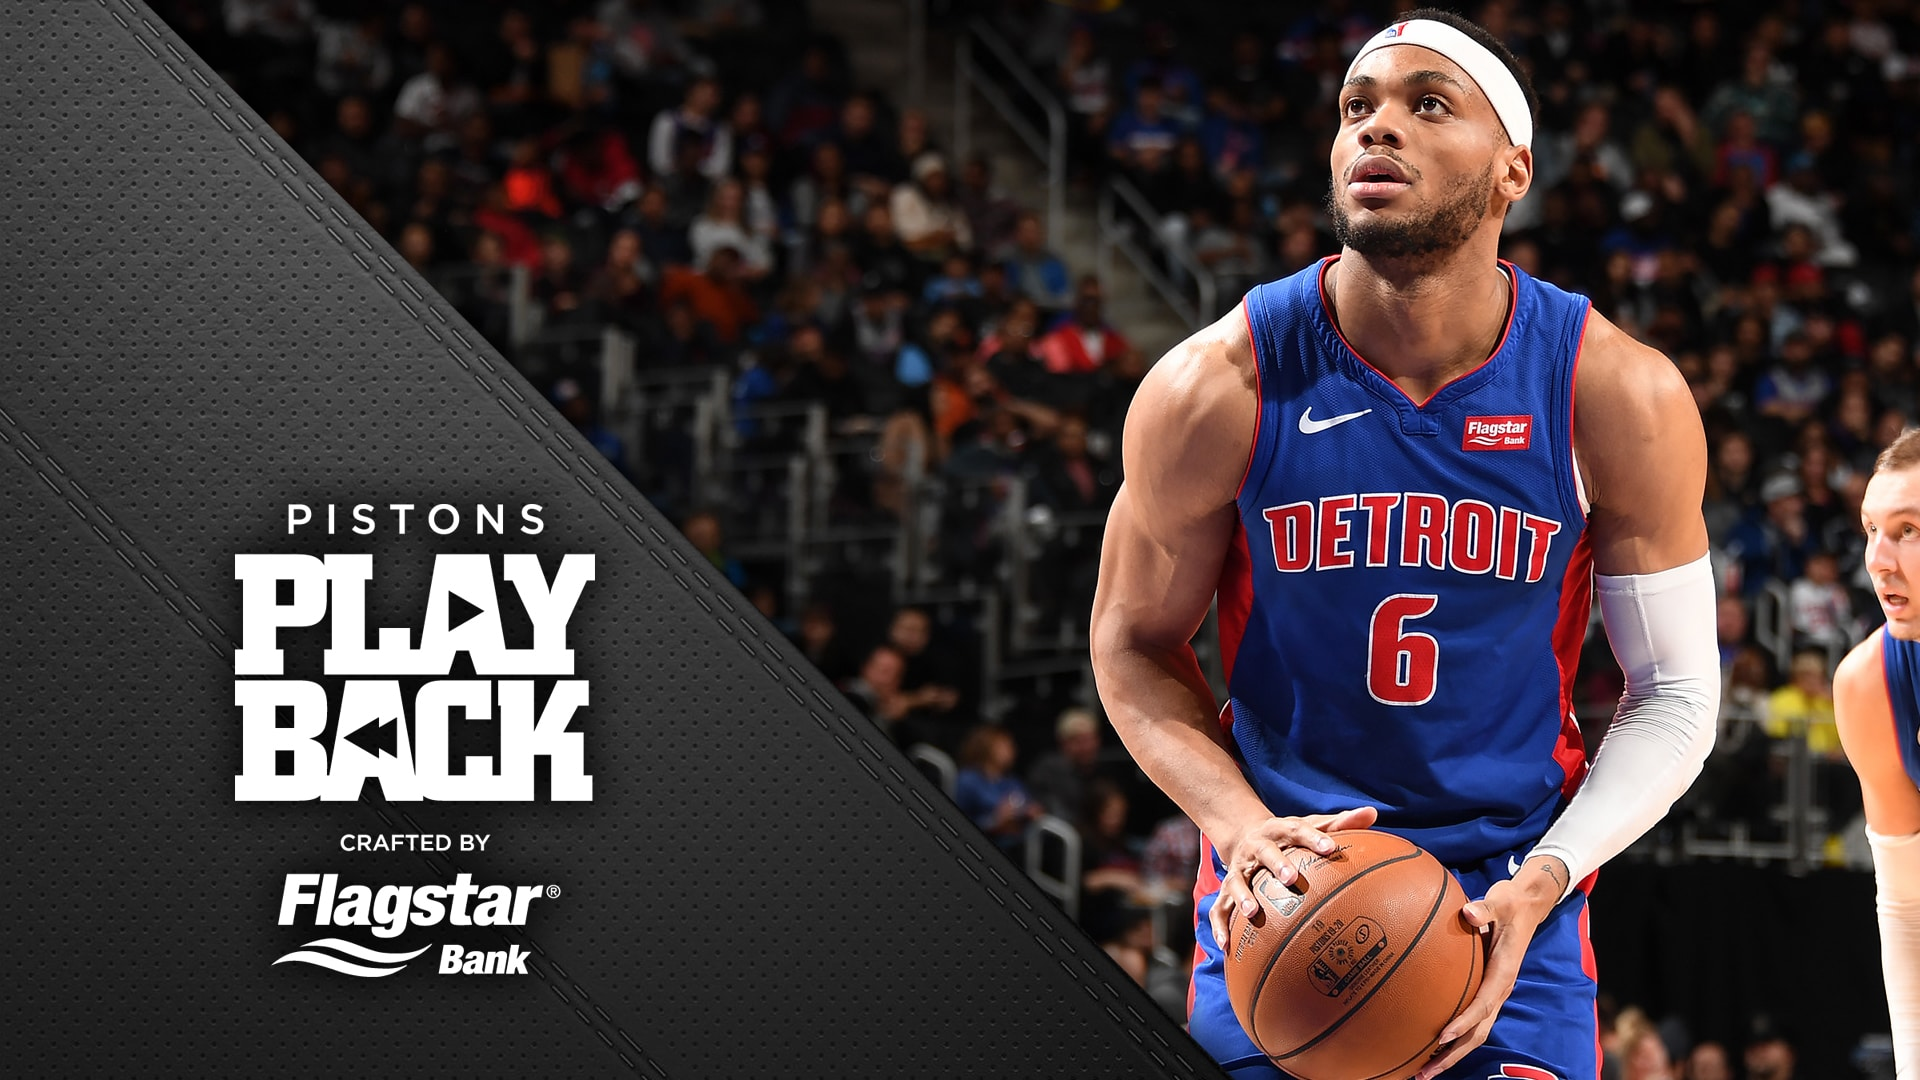 Pistons Playback, crafted by Flagstar: Pistons vs Nets